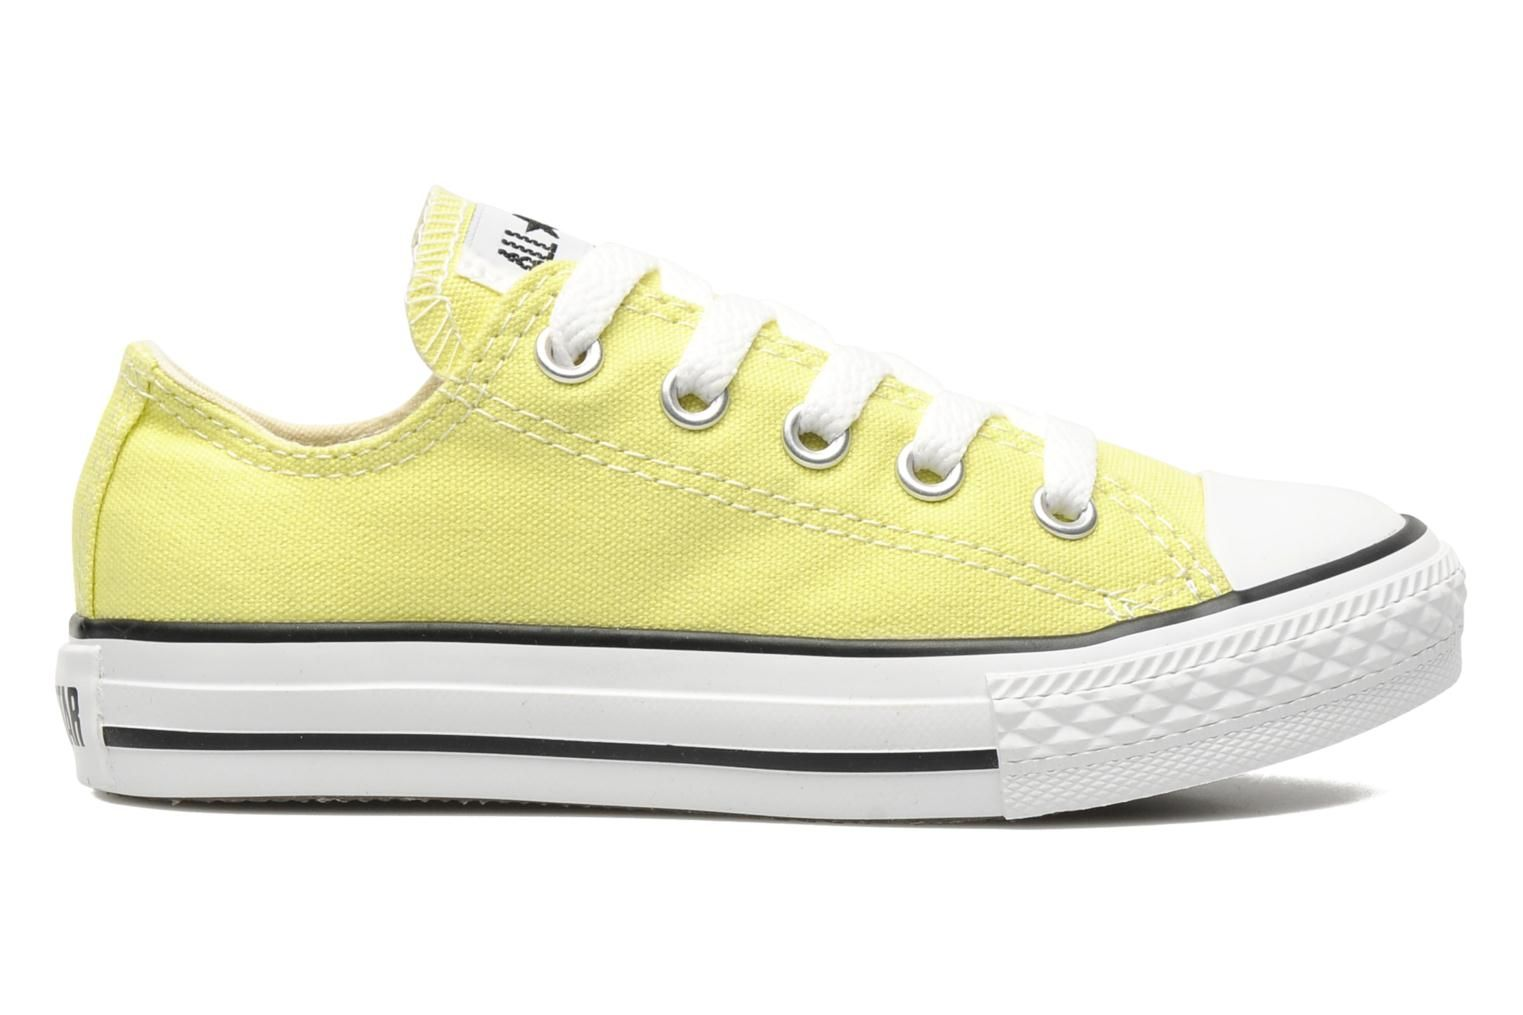 low priced 9ba41 2ab24 Chuck Taylor All Star Ox K Converse (Jaune)   livraison gratuite de vos  Baskets